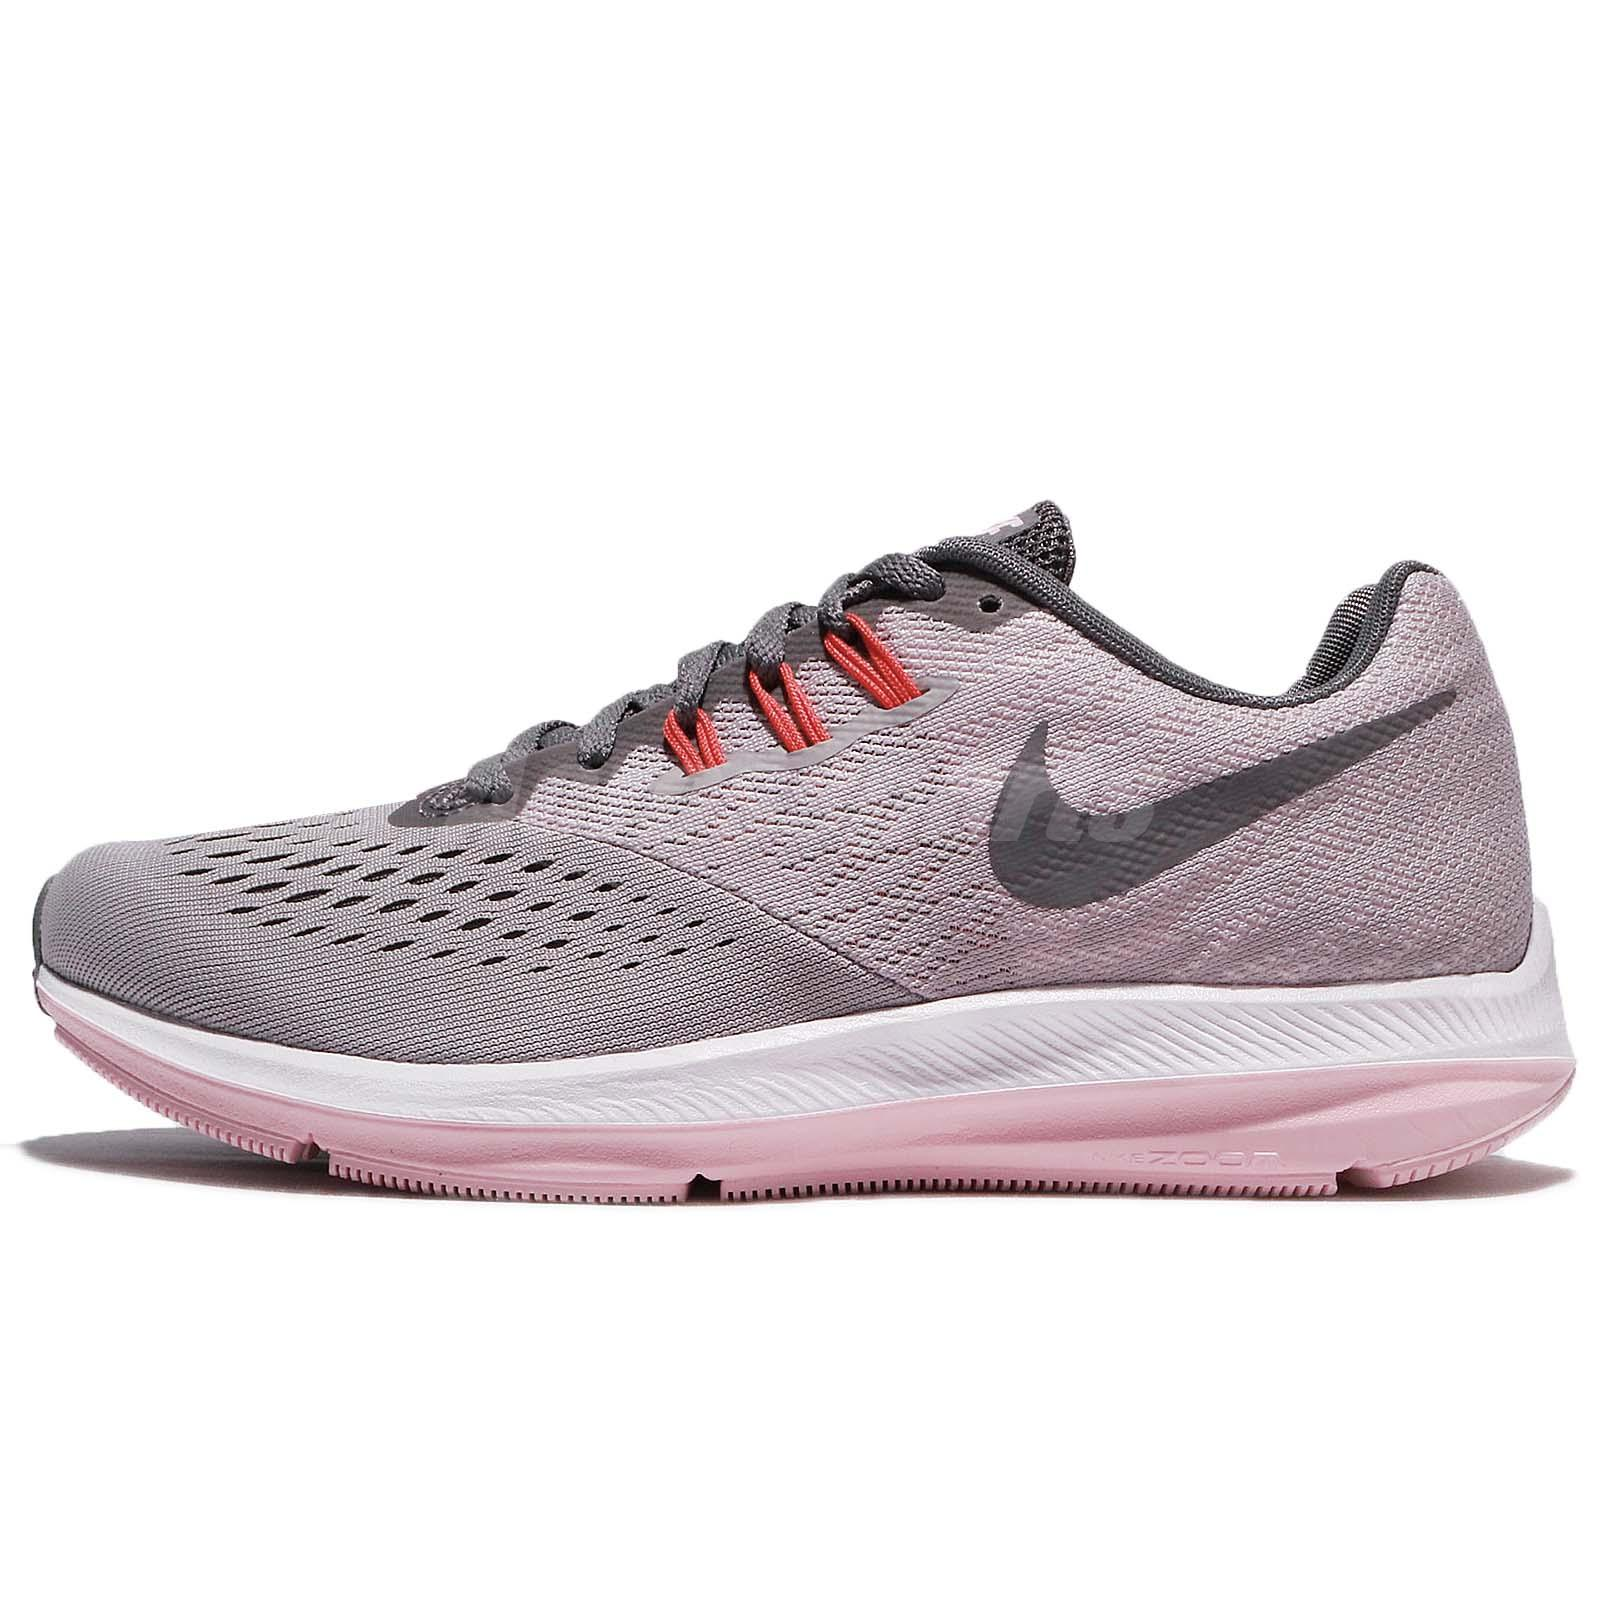 innovative design b8ea8 78f1a ... coupon for wmns nike zoom winflo 4 iv atmosphere pink women running  shoe sneaker 898485 010 ...